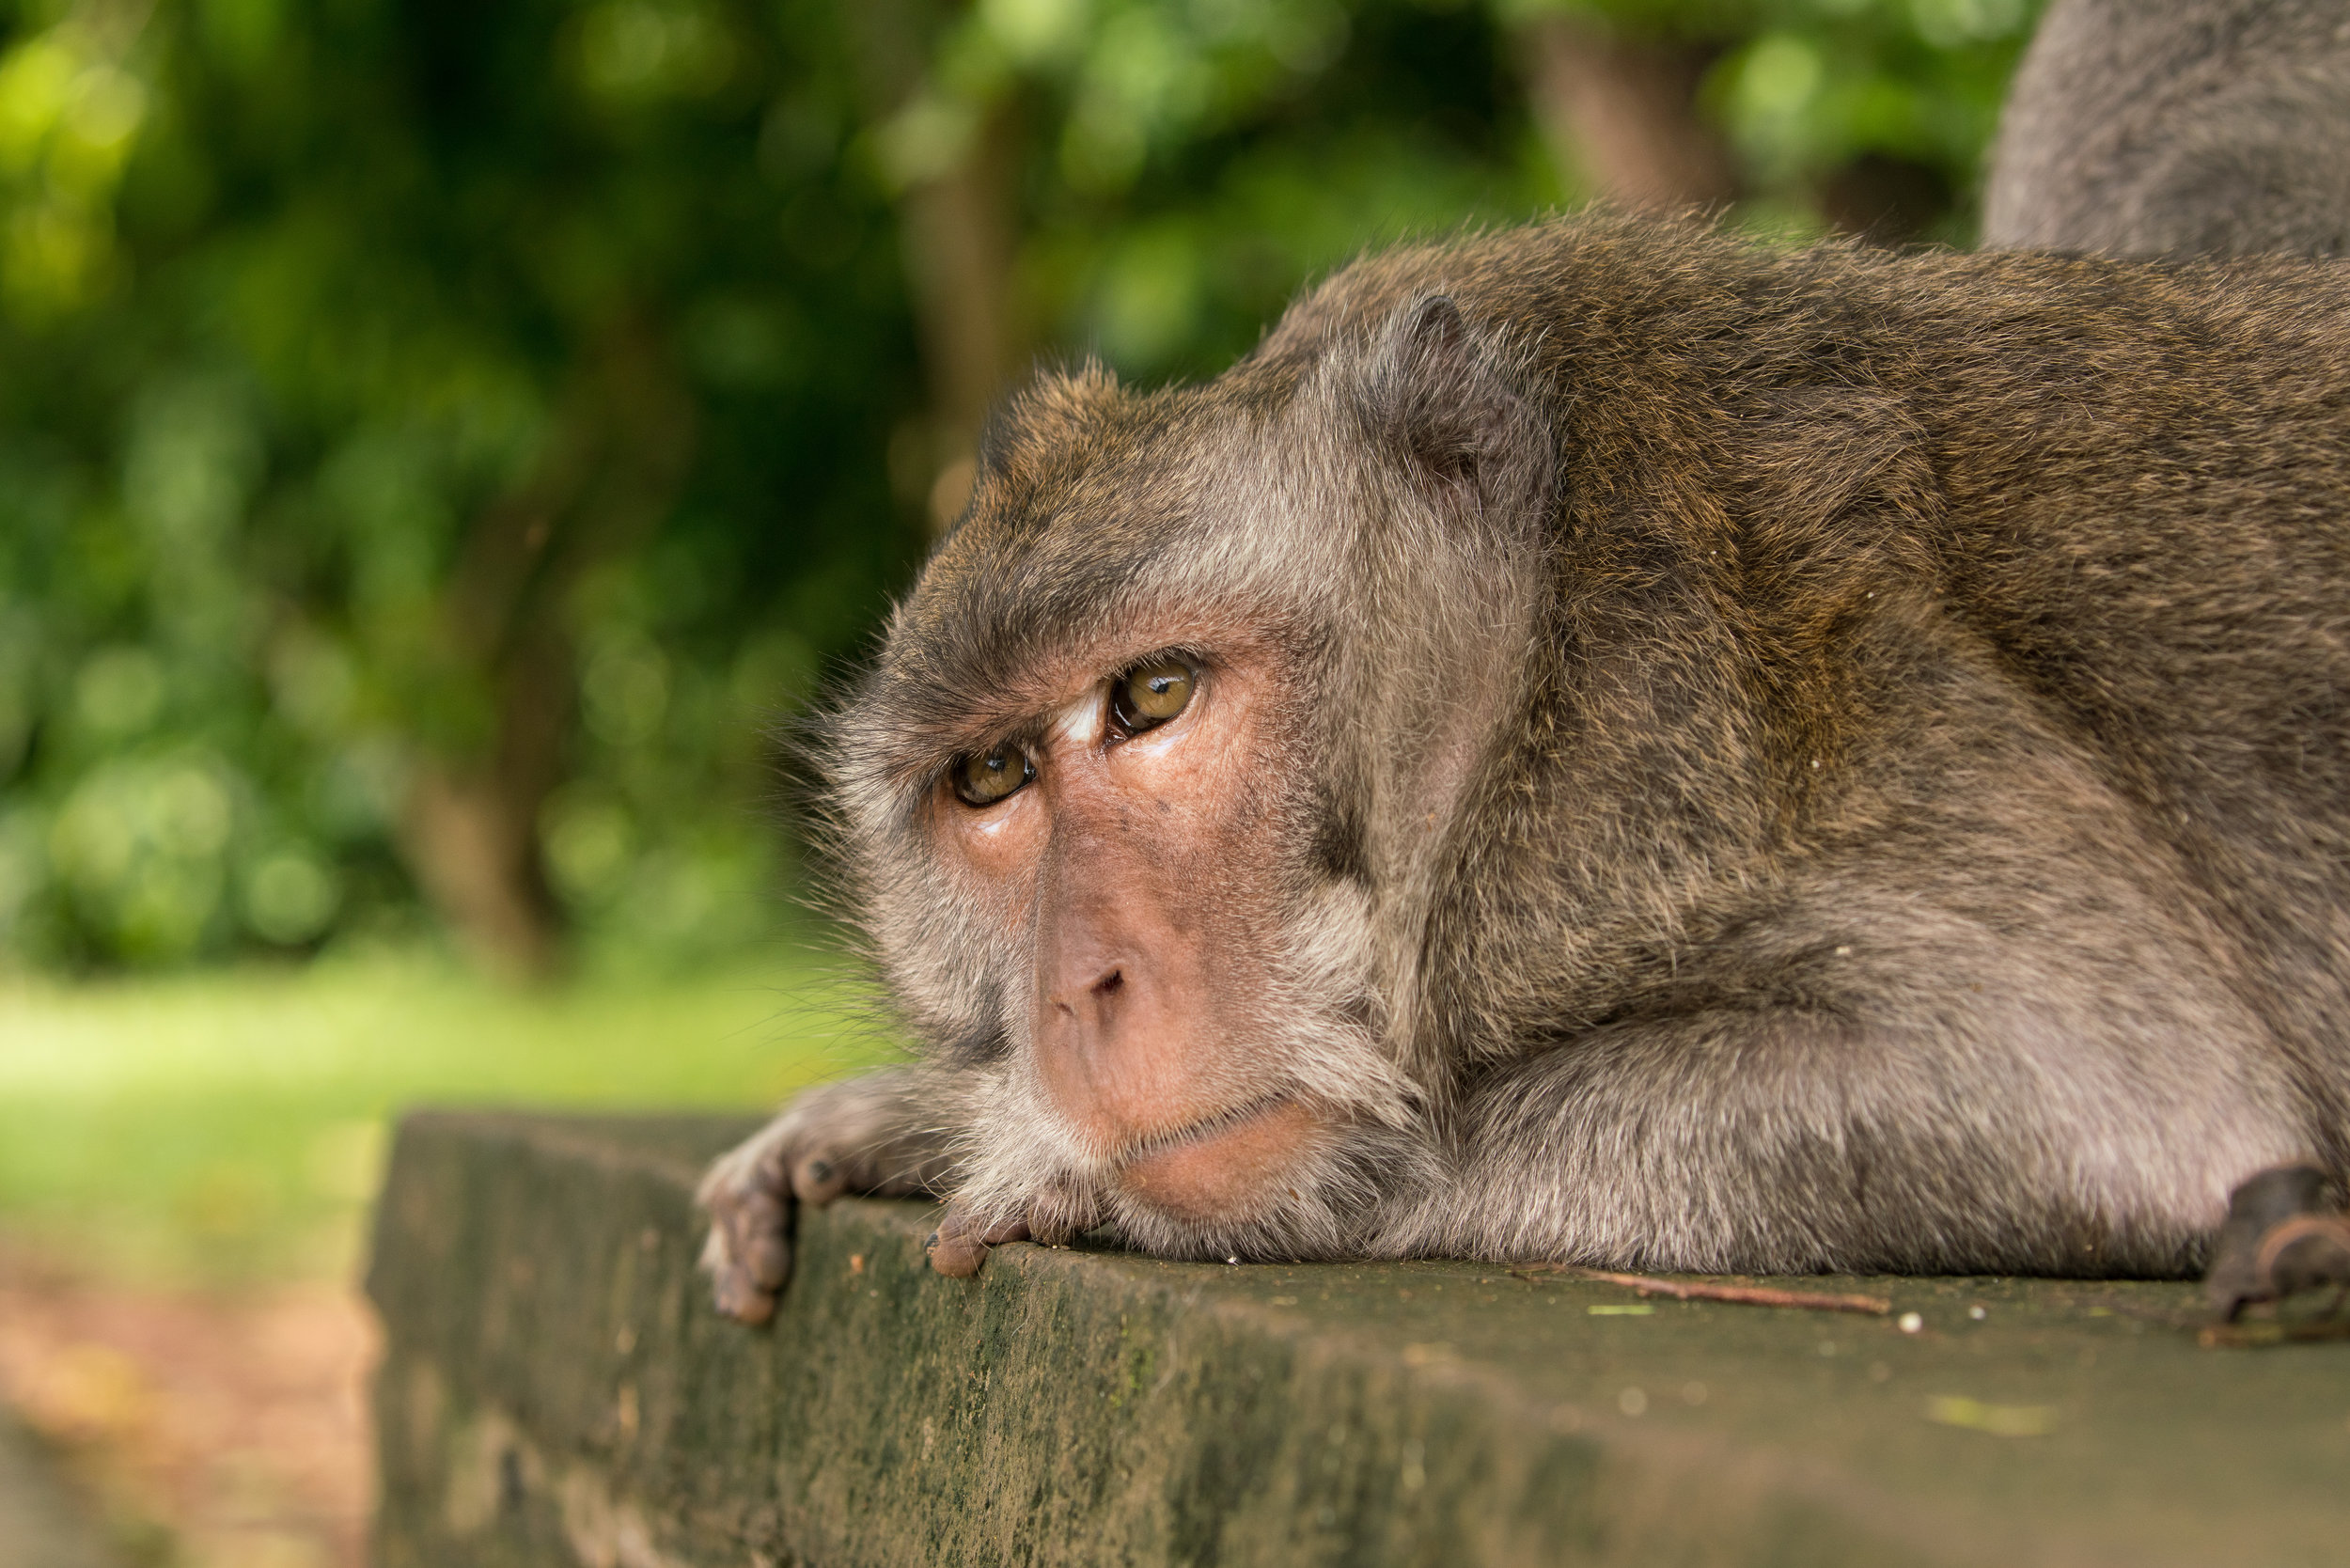 Sleepy monkey-04744.jpg